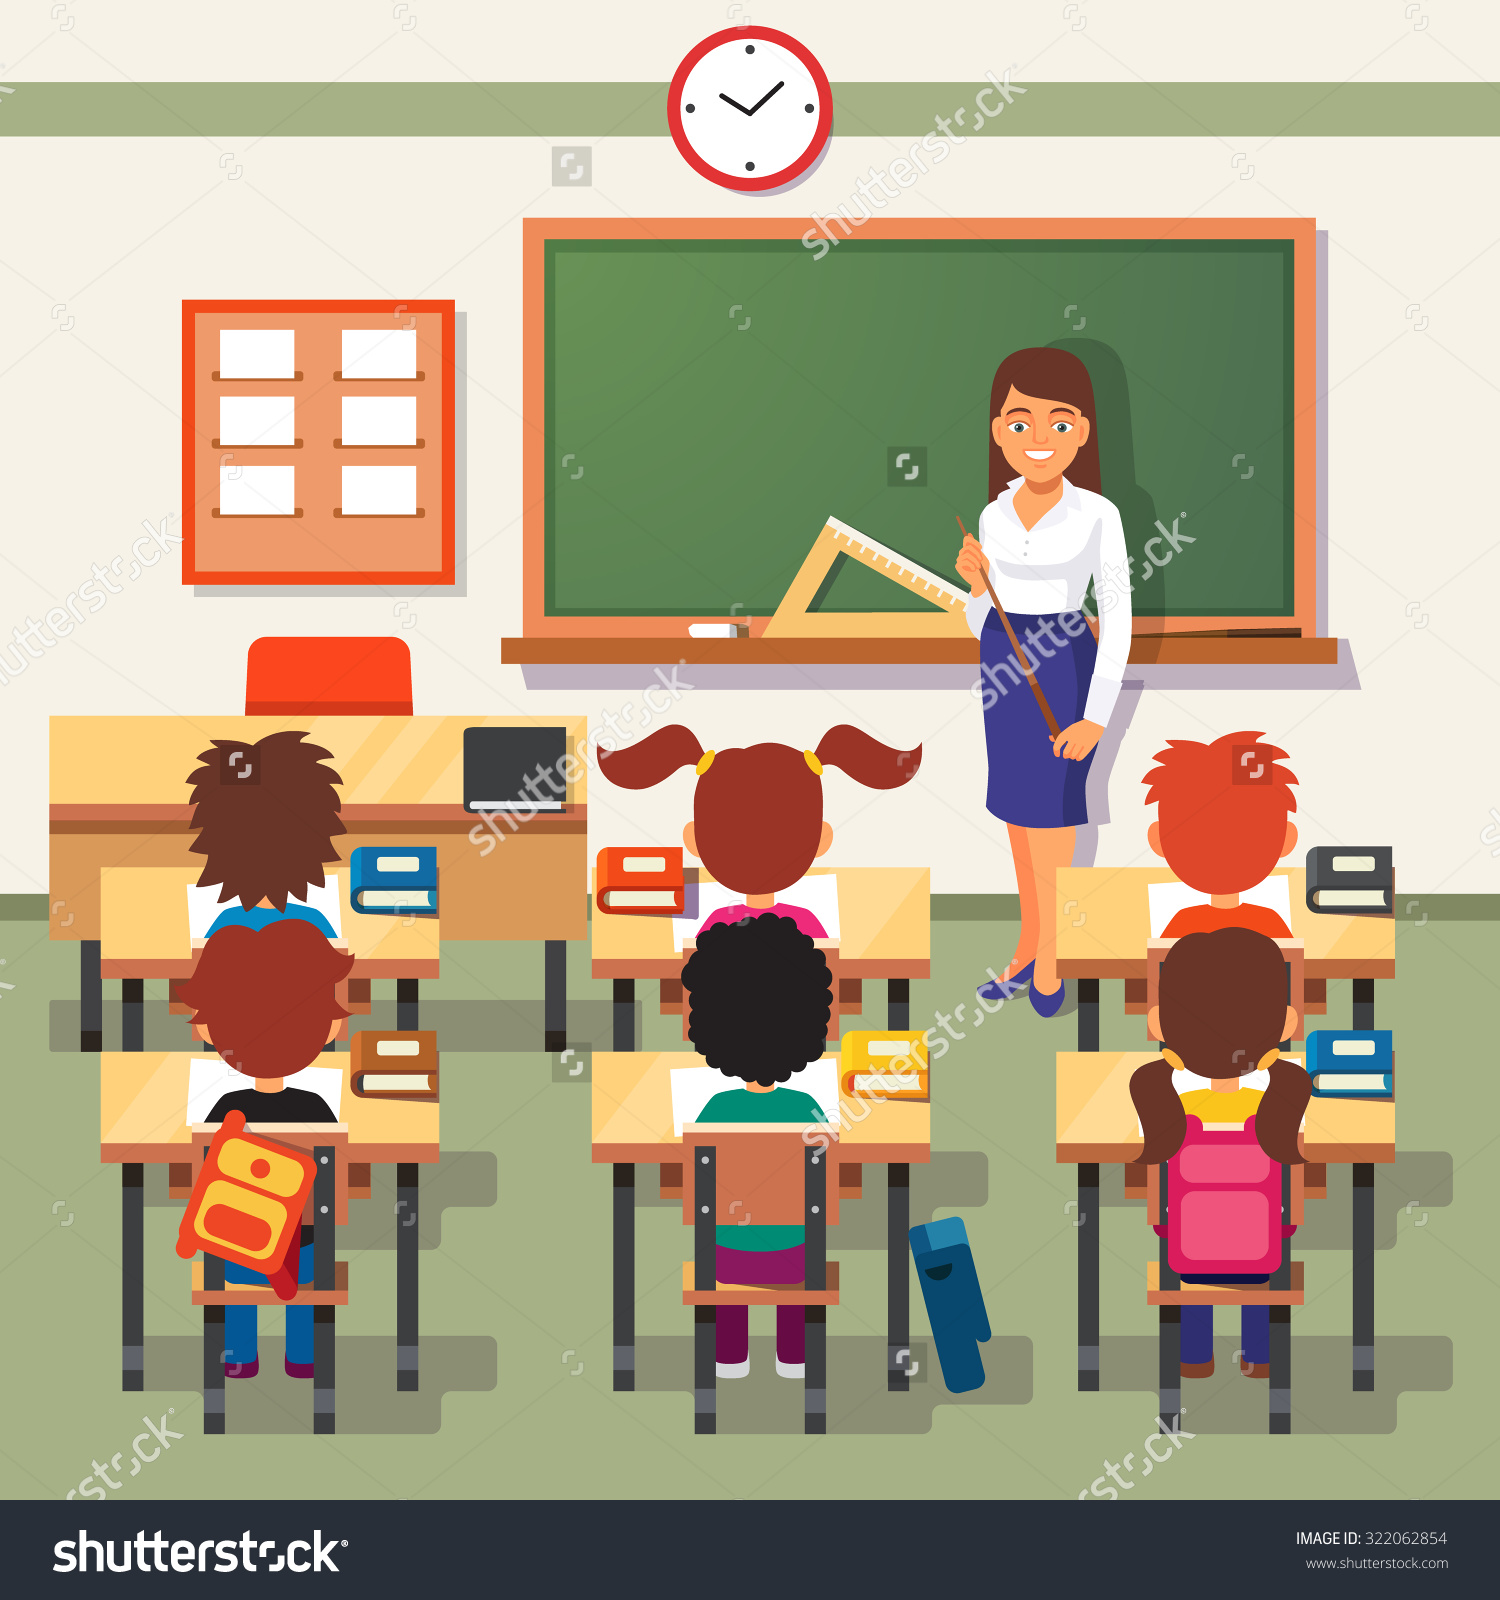 primary school classroom clipart 6 clipart station rh clipartstation com classroom clipart free classroom clipart images